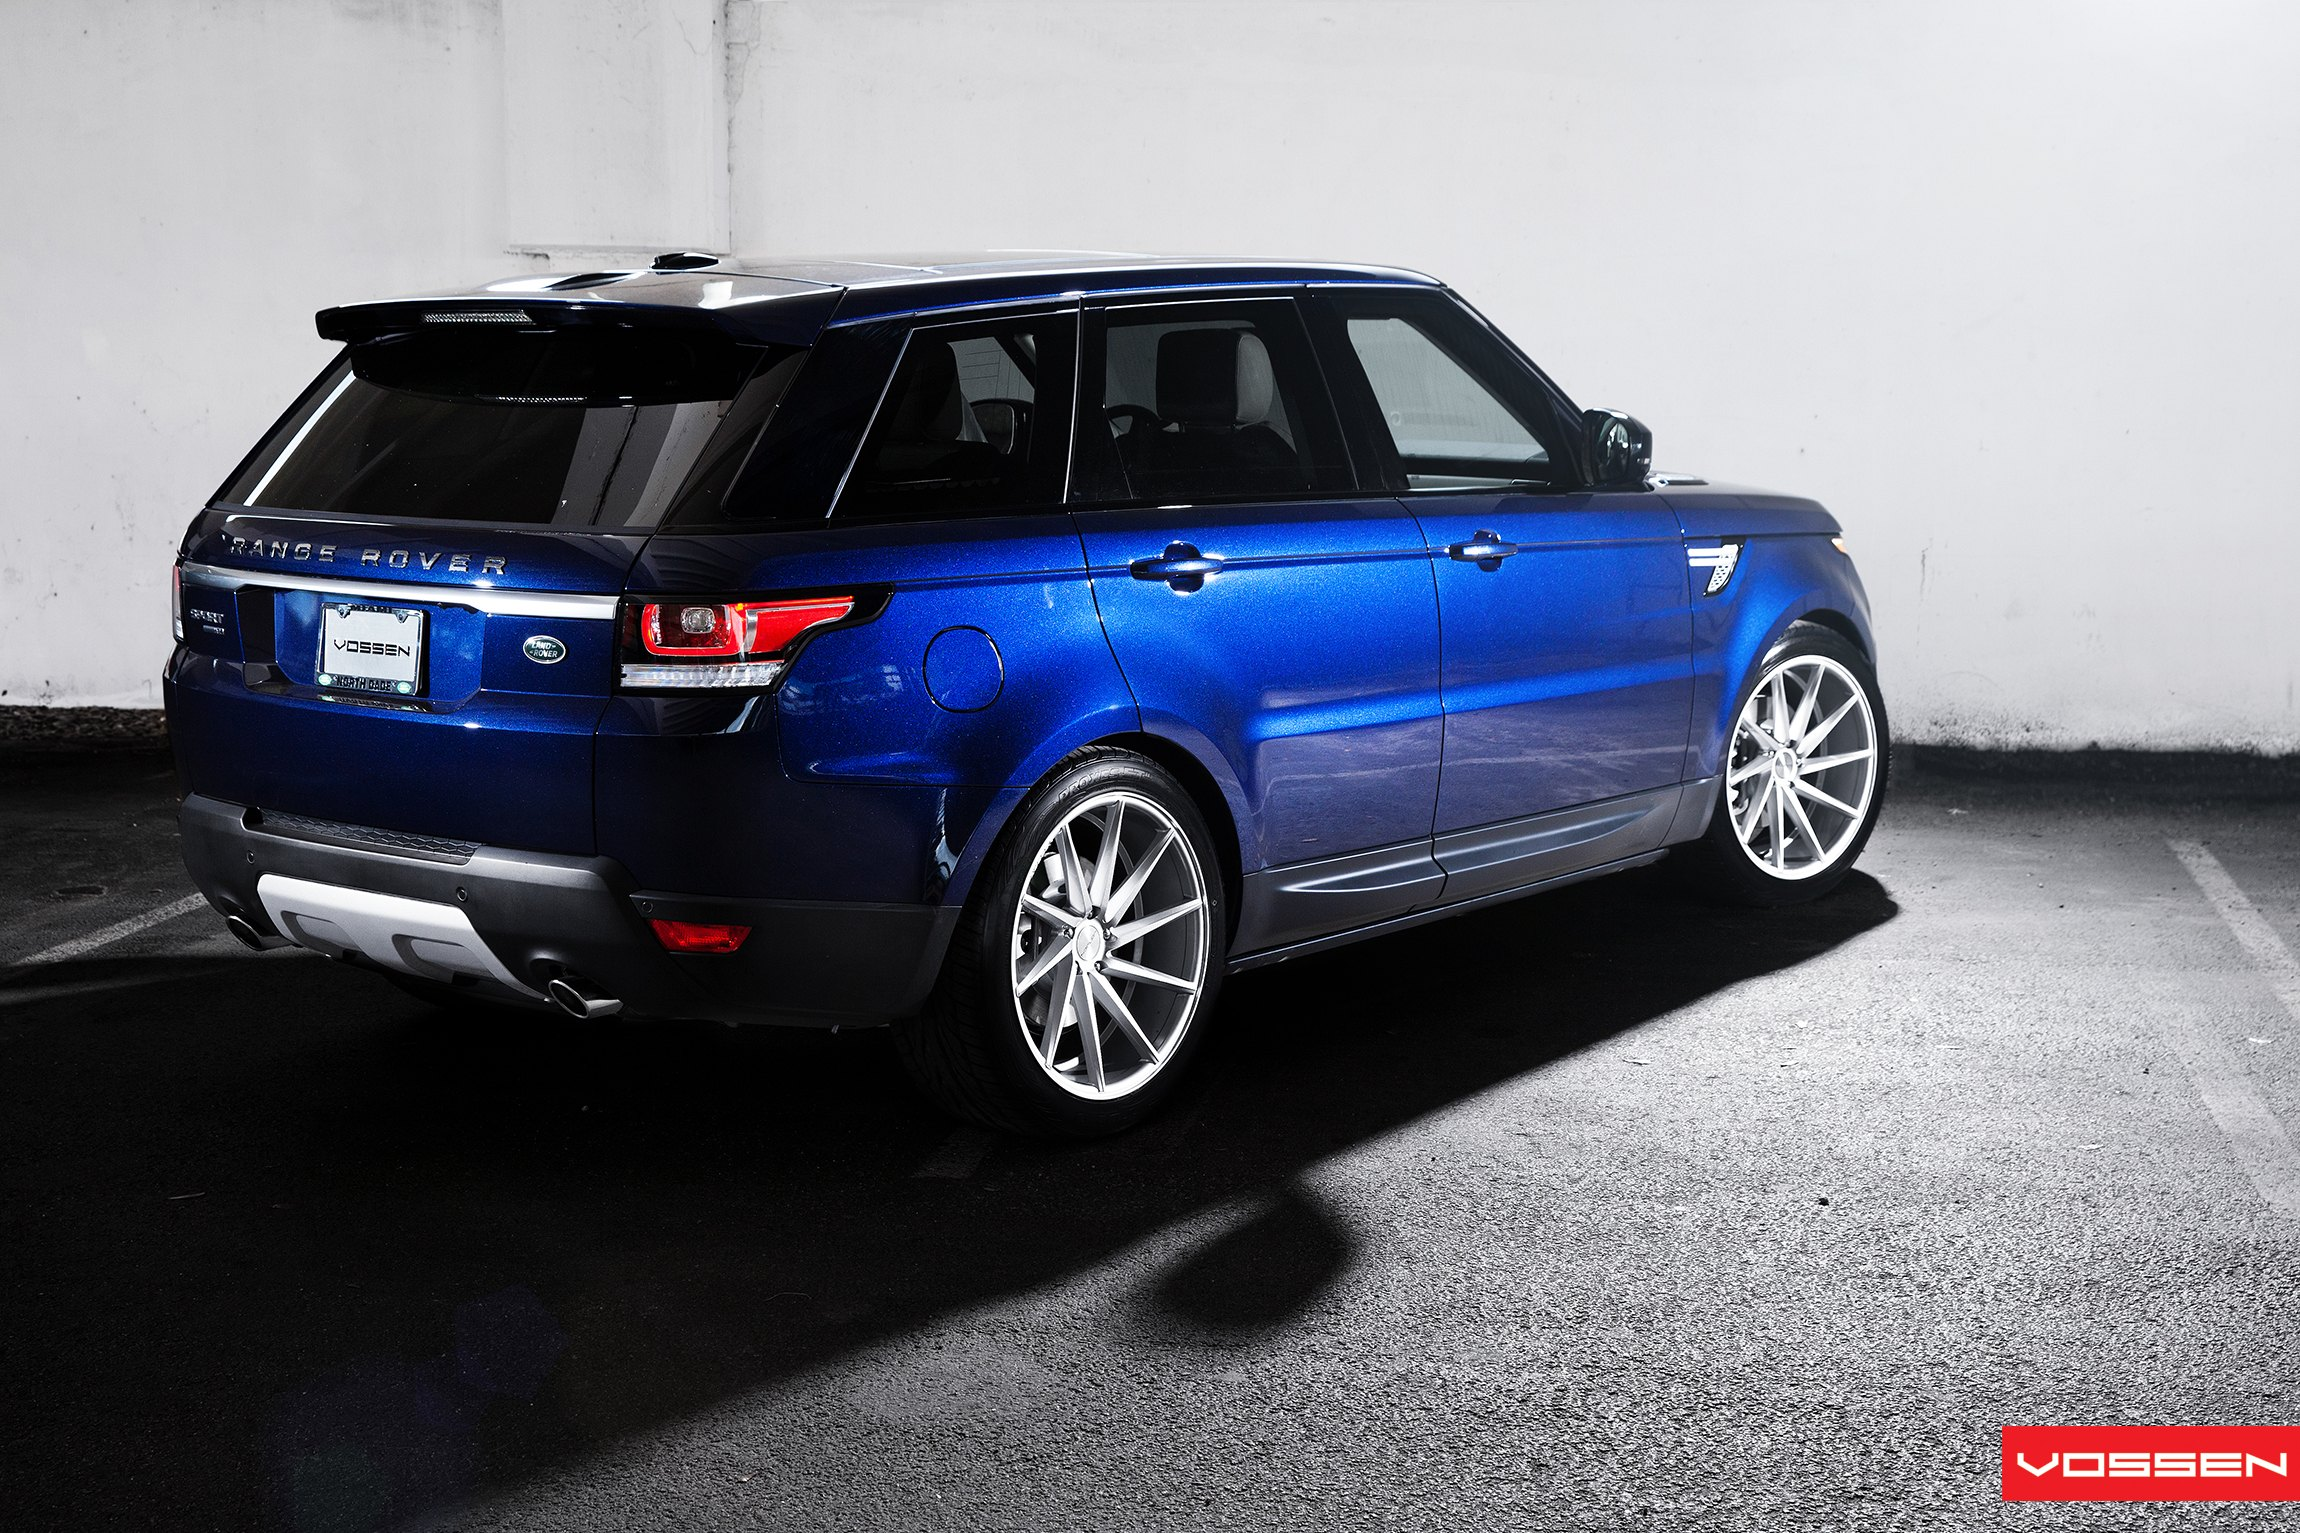 Blue Metallic Range Rover Sport Fitted With Classy Custom Wheels